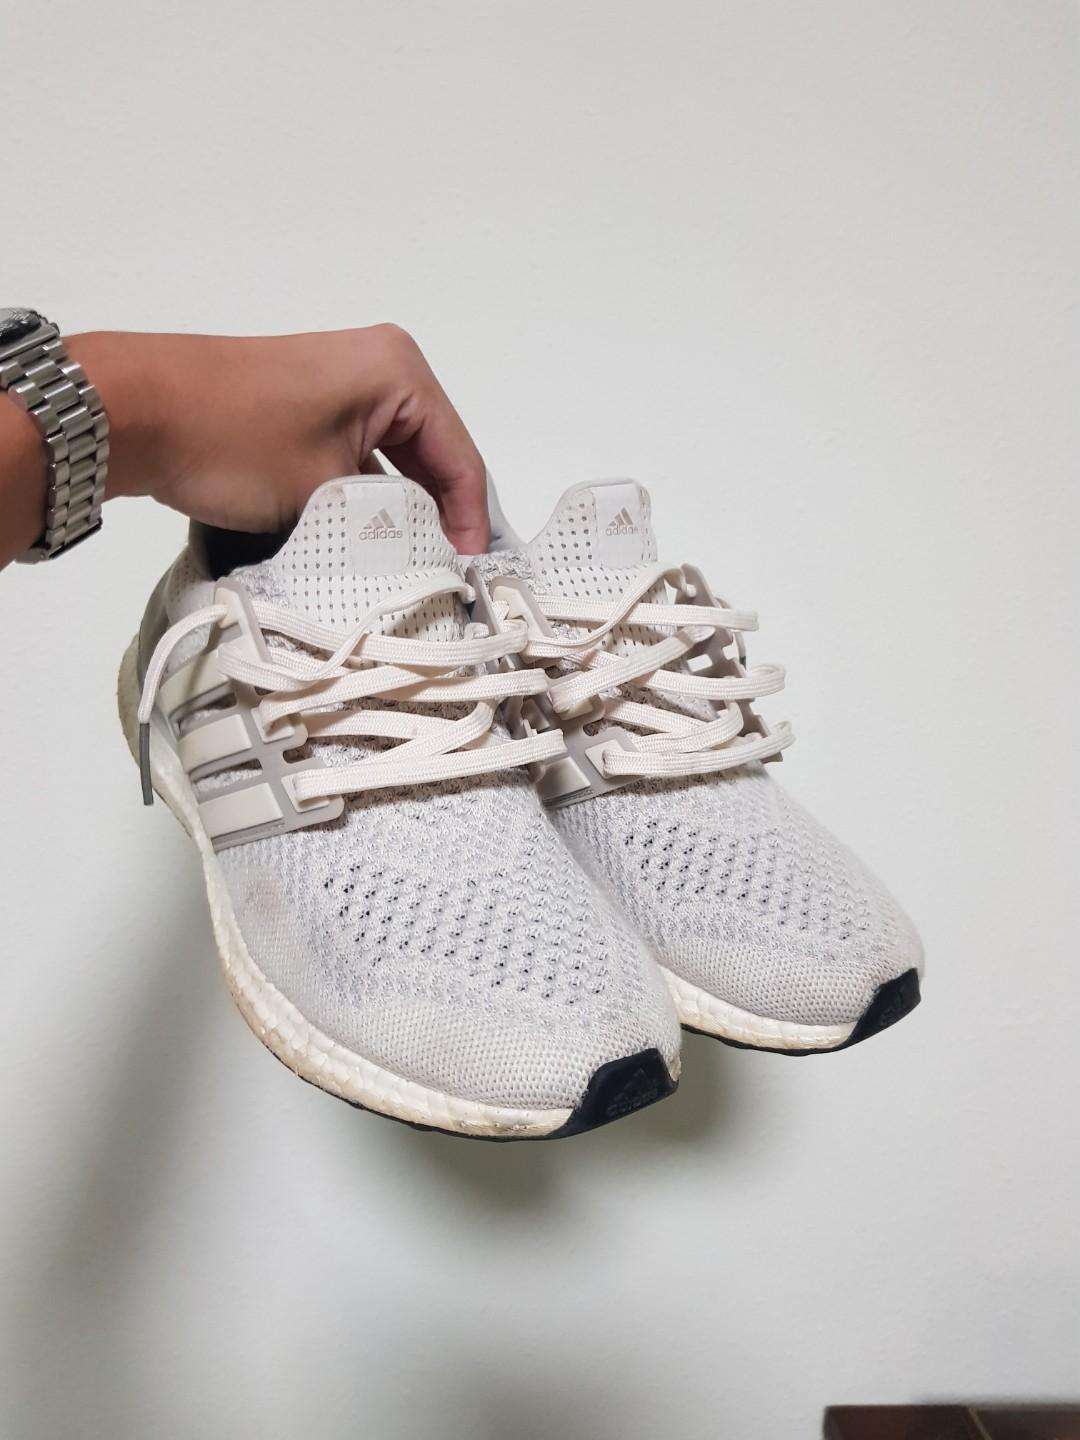 low priced 2c991 5b55e Ultra Boost 1.0 Cream/Chalk/Tan, Men's Fashion, Footwear ...